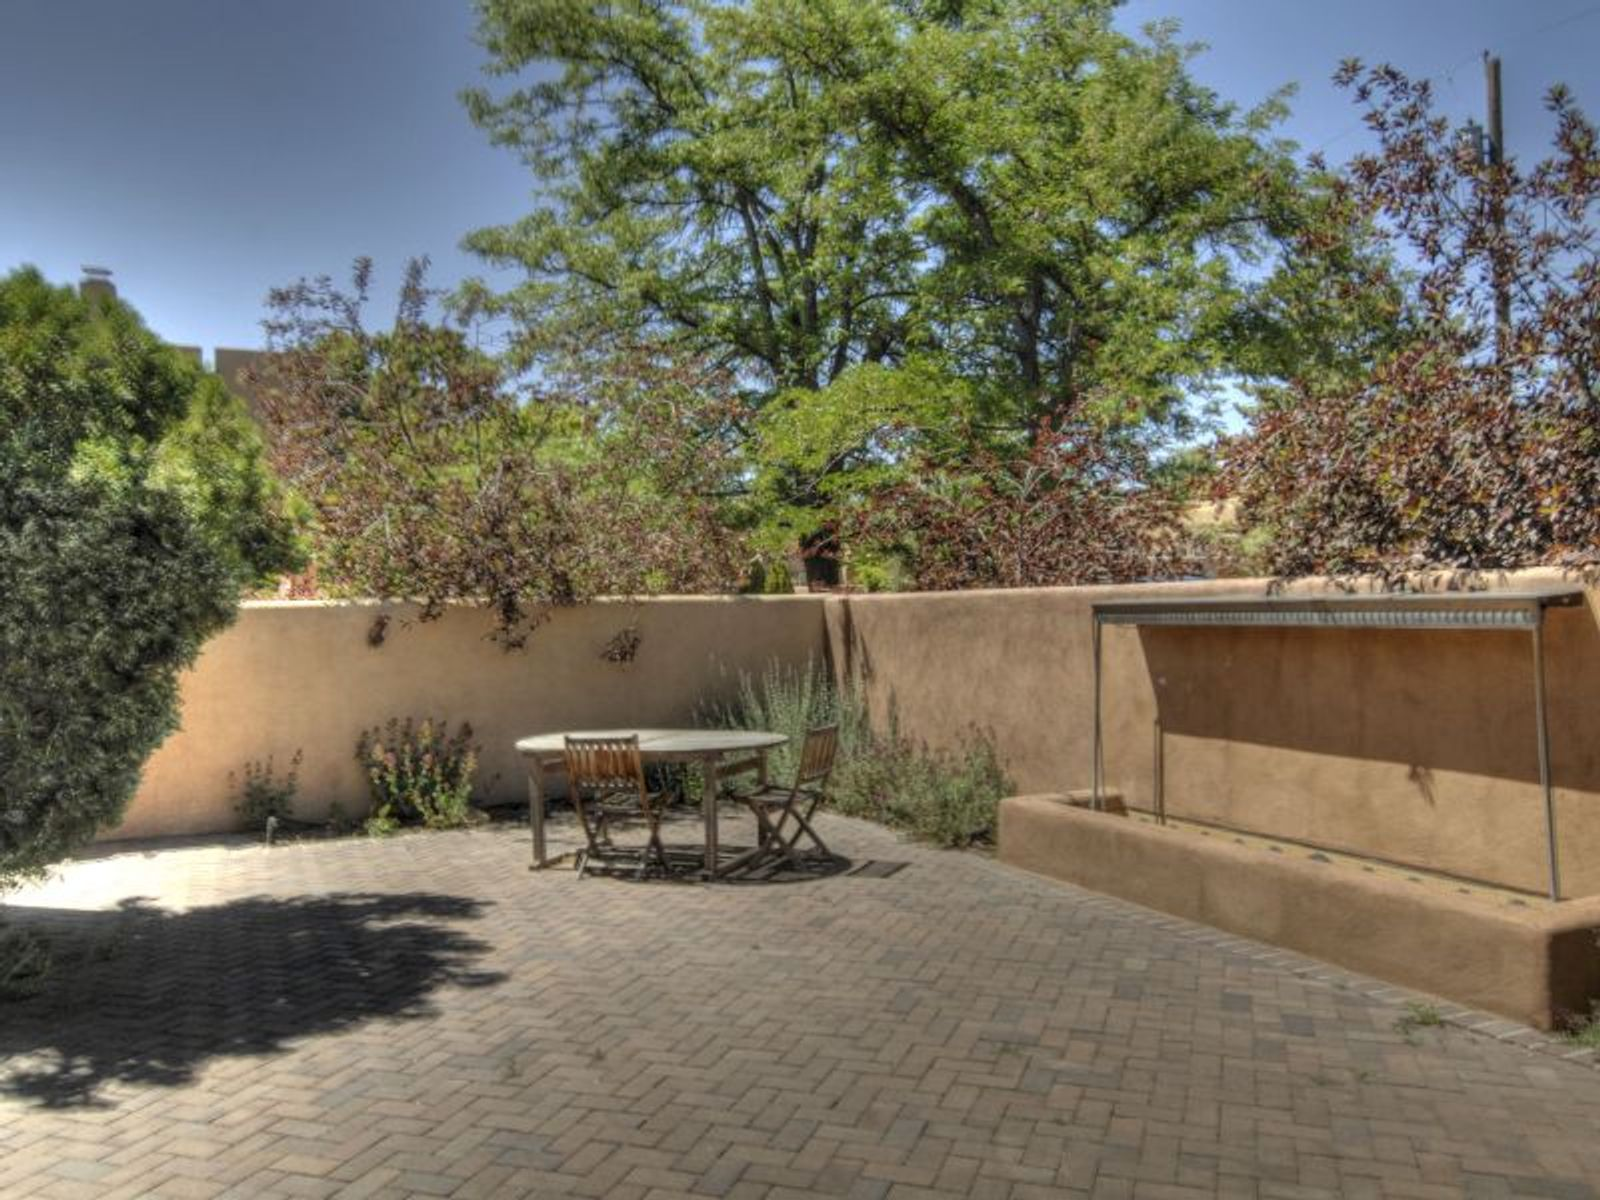 610 Rio Grande Ave, Santa Fe NM Single Family Home - Santa Fe Real Estate